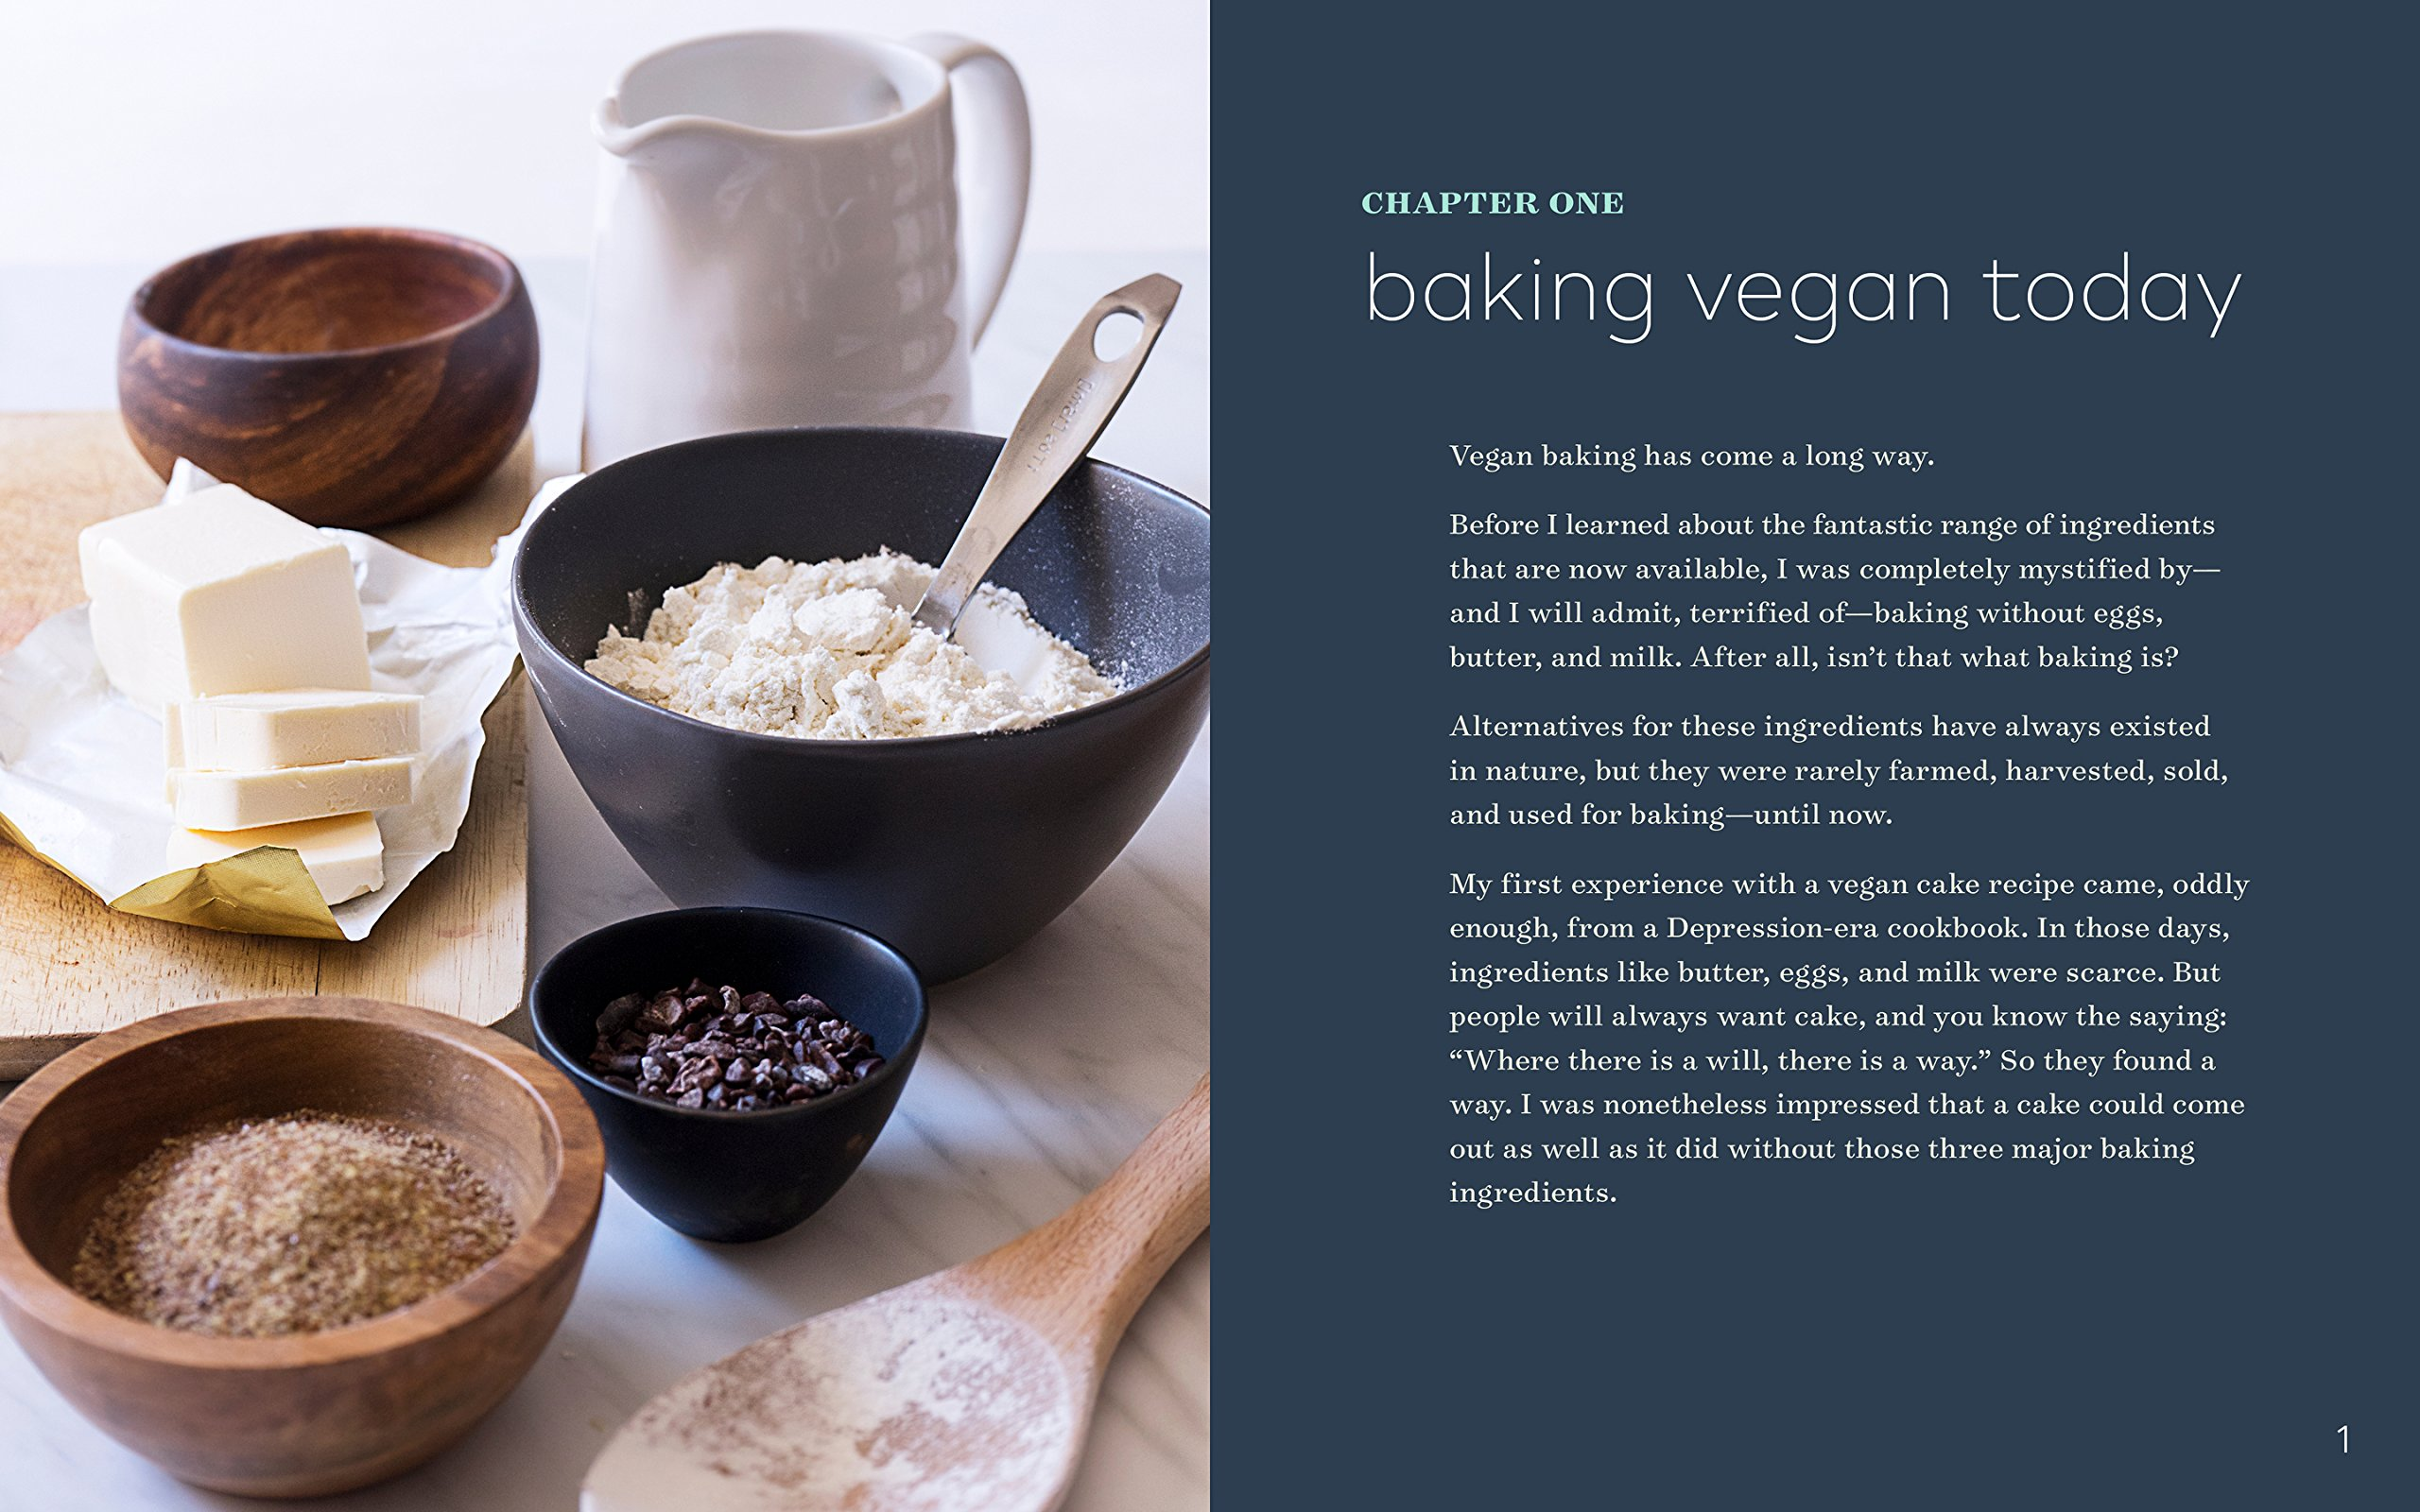 Modern Vegan Baking The Ultimate Resource For Sweet And Savory Baked Goods Gretchen Price 9781623159610 Amazon Com Books